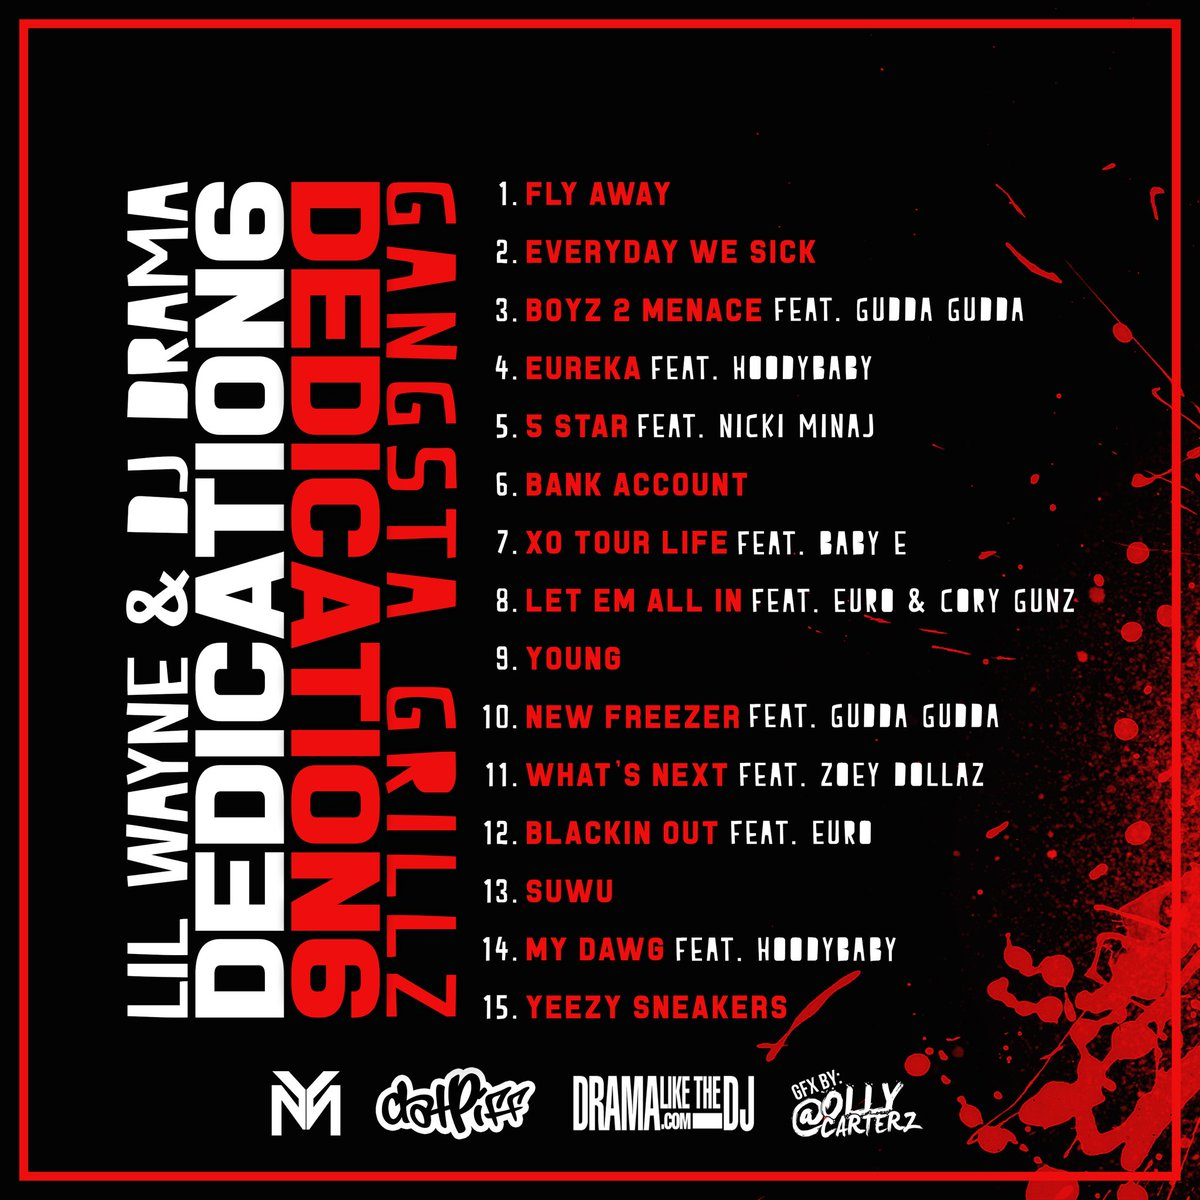 It's going to be a lovely Christmas!! #Dedication6 #D6 #YoungMoney https://t.co/nIqHZjTbcF